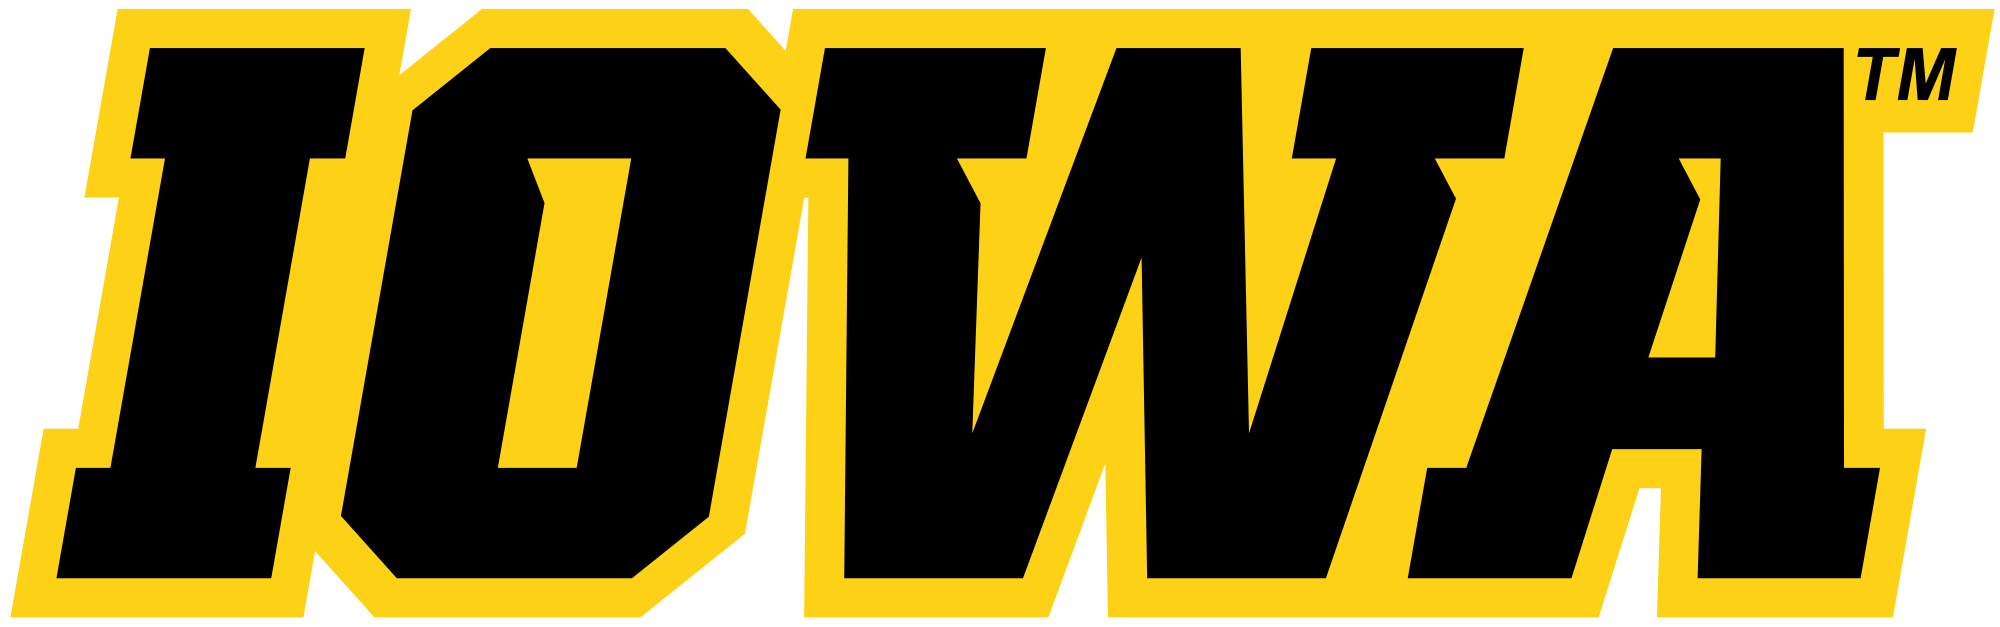 Open Hdpng.com  - Iowa Hawkeye, Transparent background PNG HD thumbnail